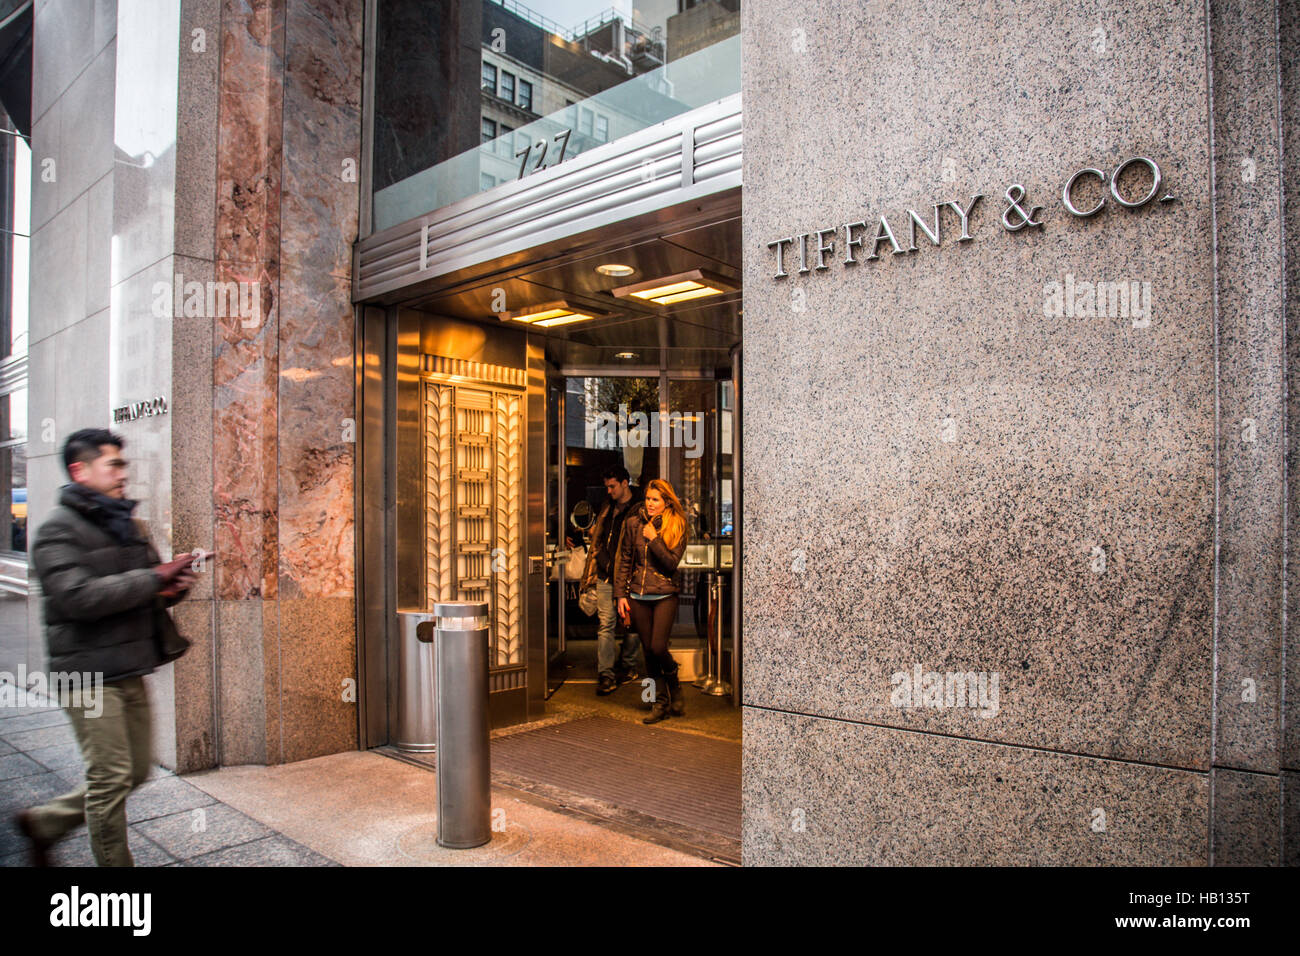 Tiffany and co stock photos tiffany and co stock images alamy exterior view of tiffany co on fifth avenue in new york city stock reviewsmspy